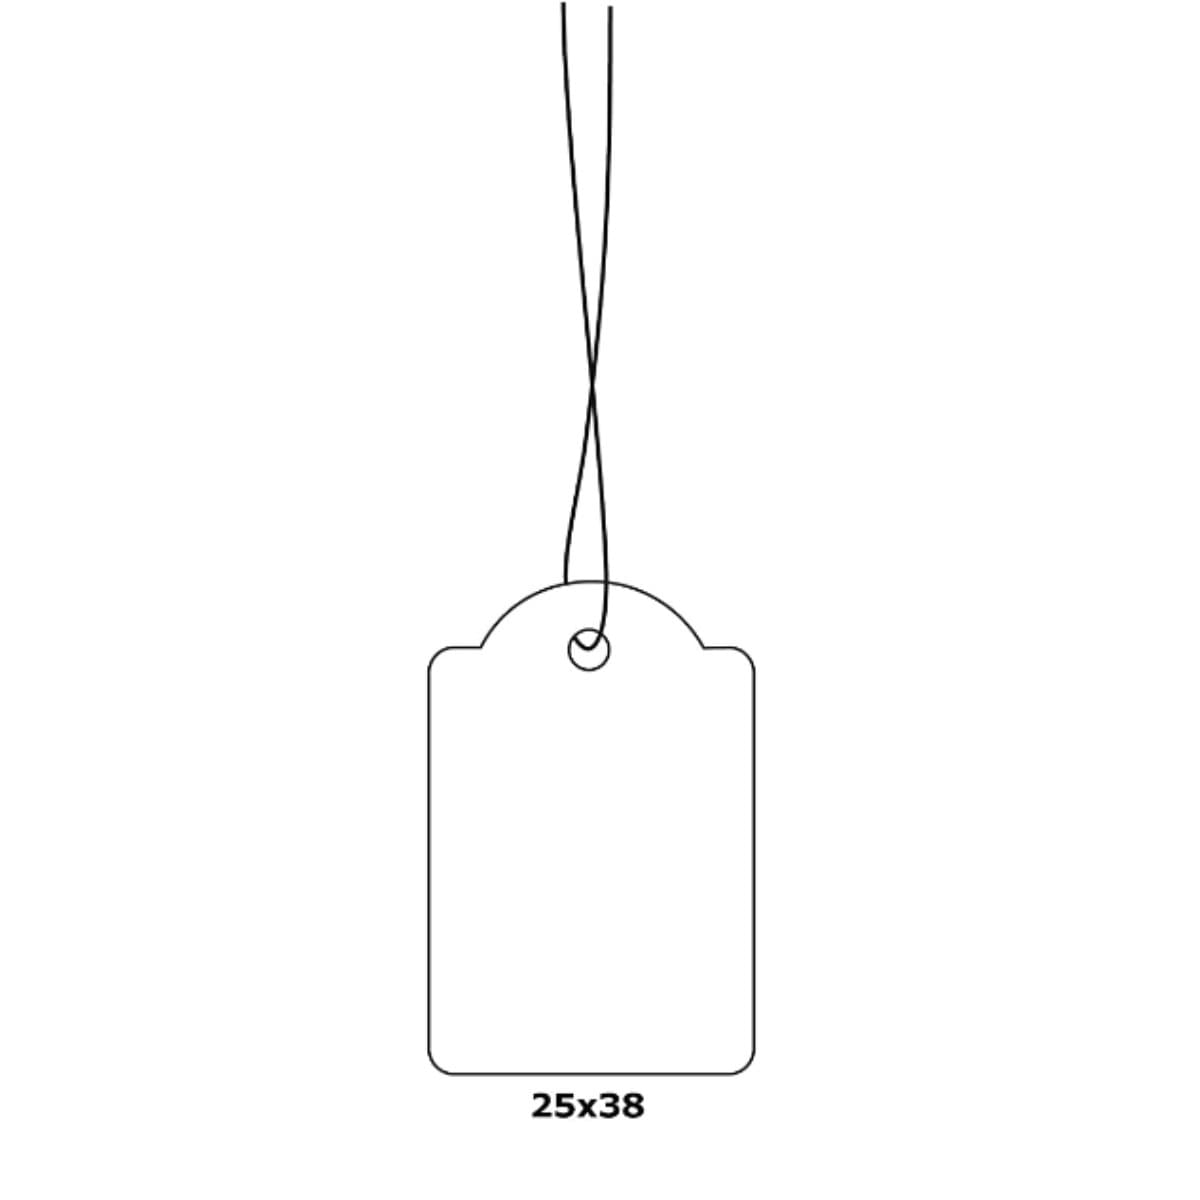 Herma Merchandise Tags with String, 25 x 38 mm, White